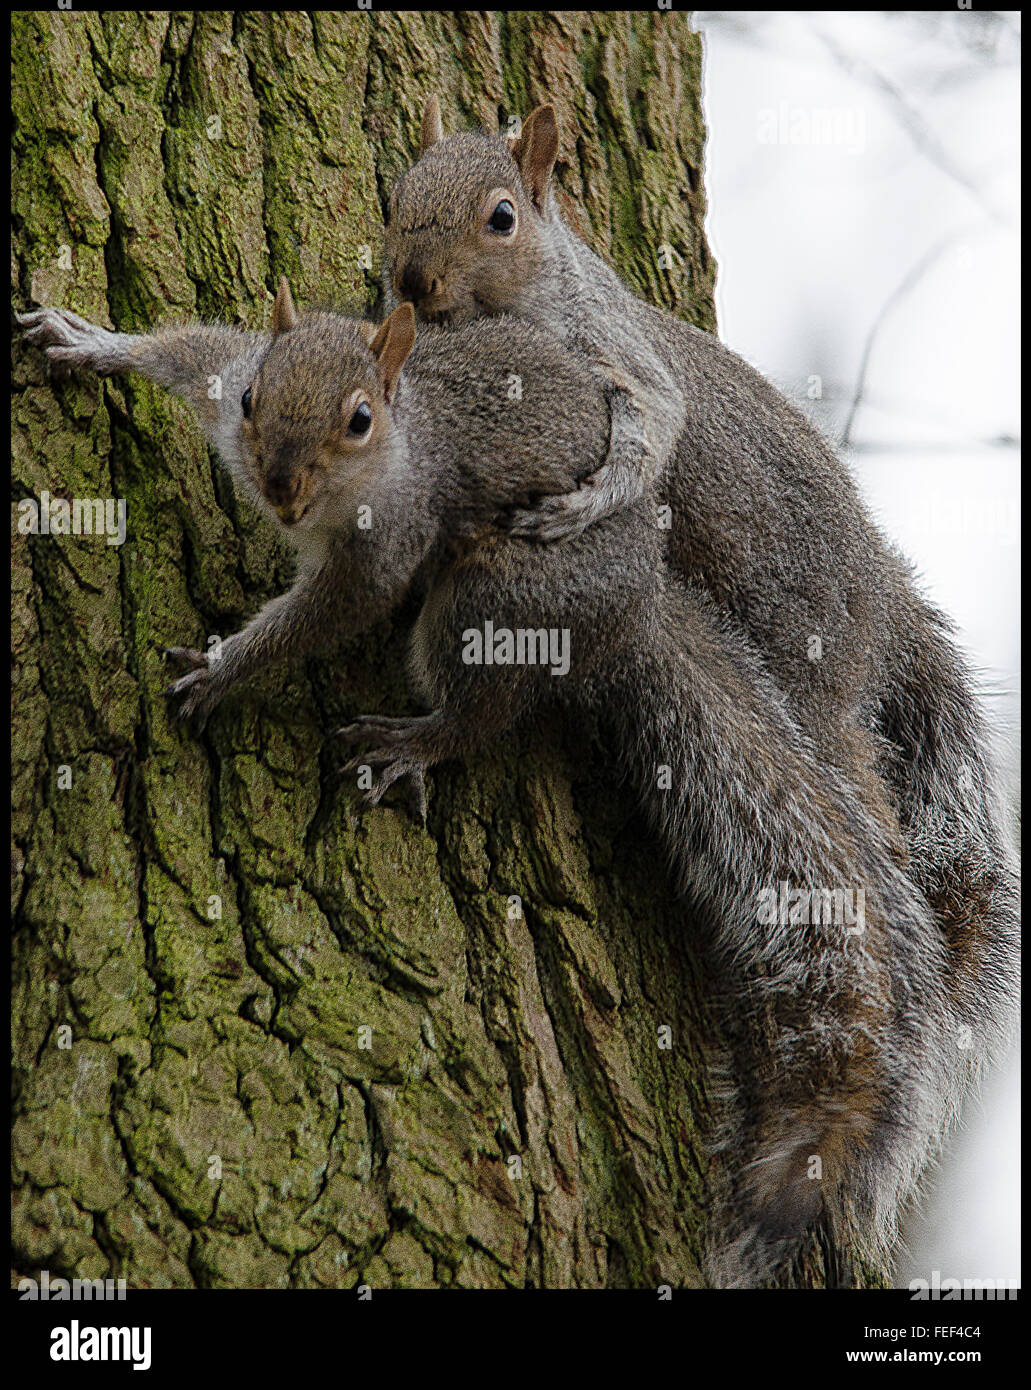 how to kill squirrels naturally